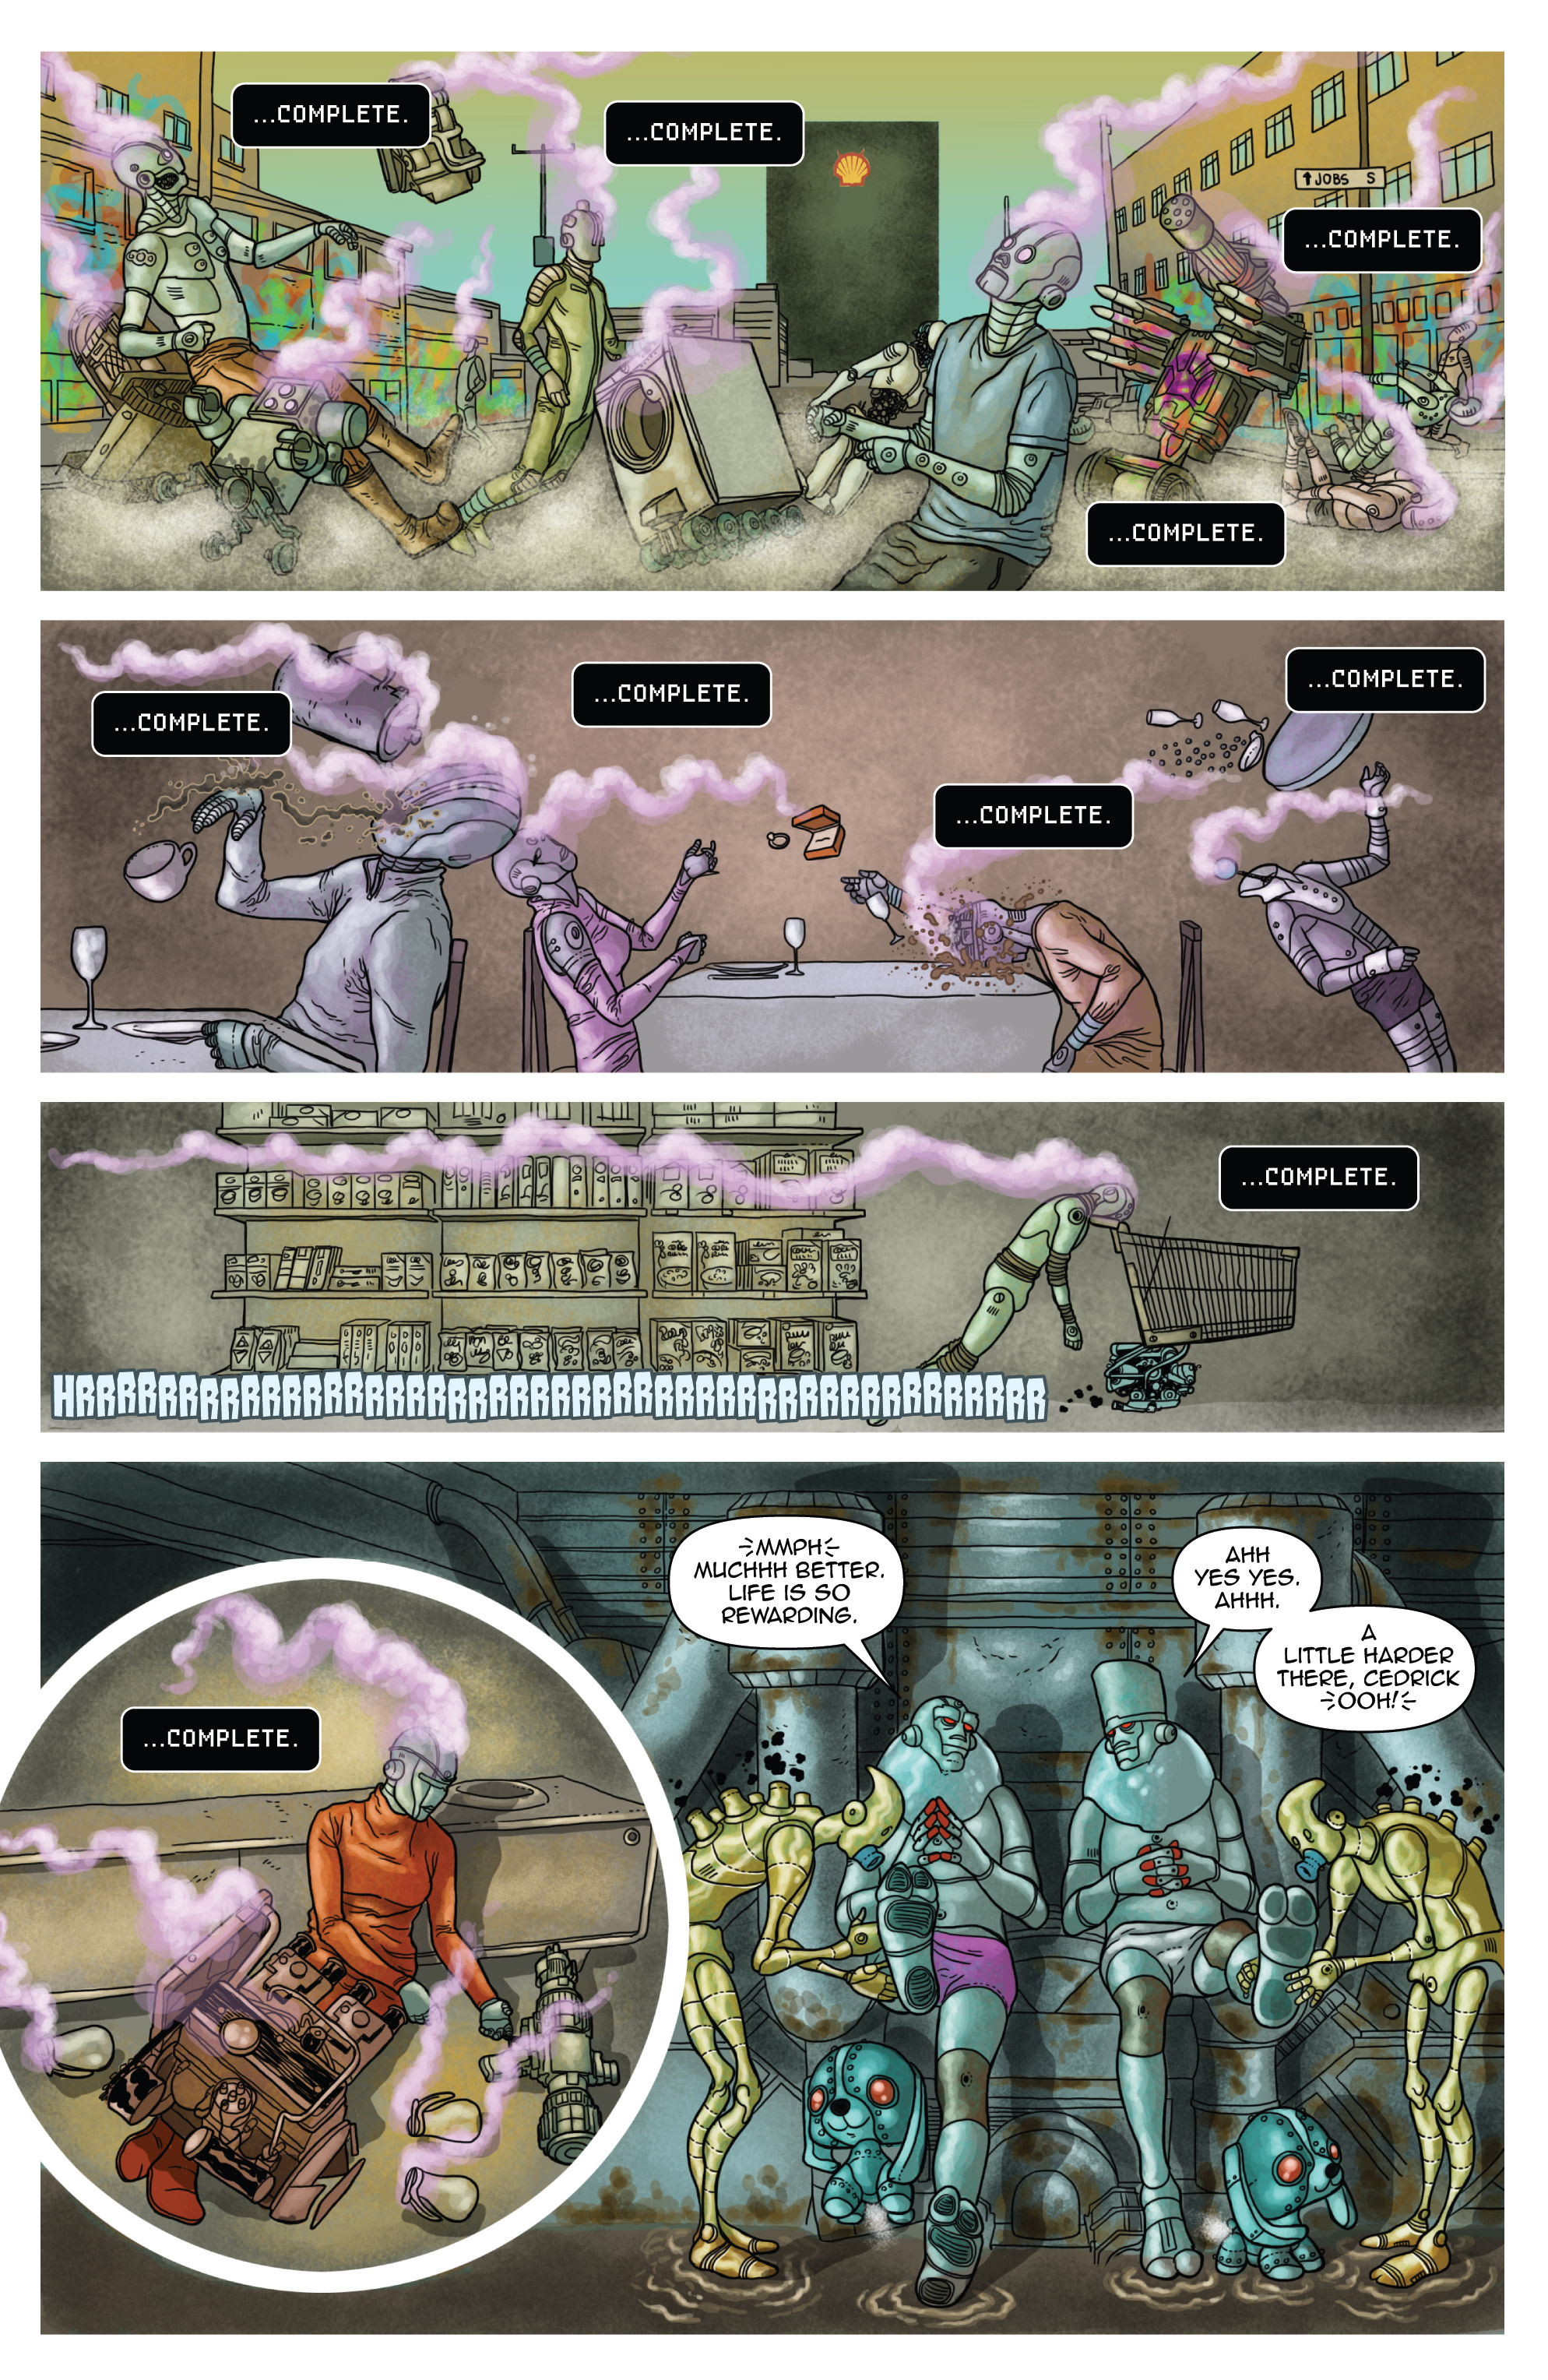 Read online D4VEocracy comic -  Issue #4 - 9